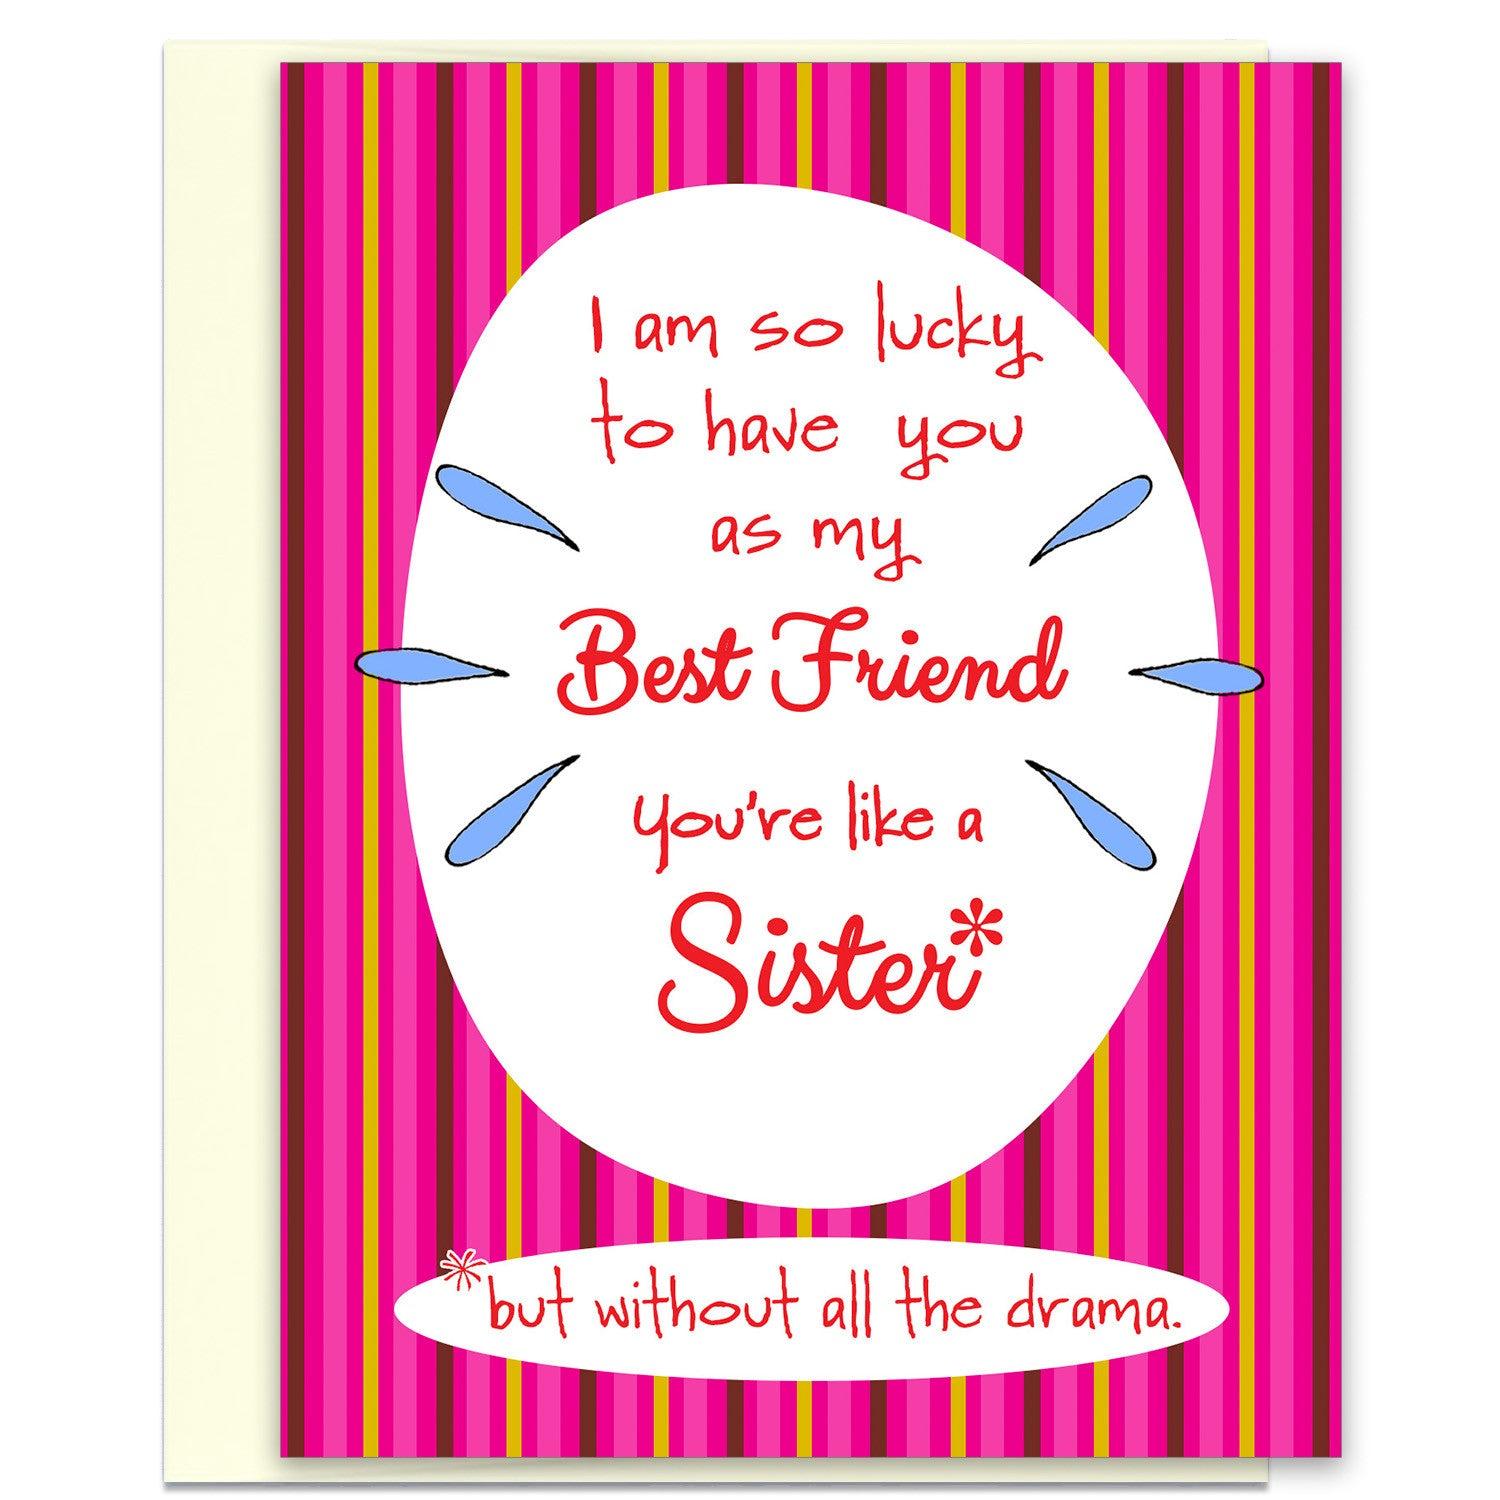 Like a sister best friend greeting card katmariacastudio like a sister best friend greeting card katmariacastudio 1 kristyandbryce Image collections